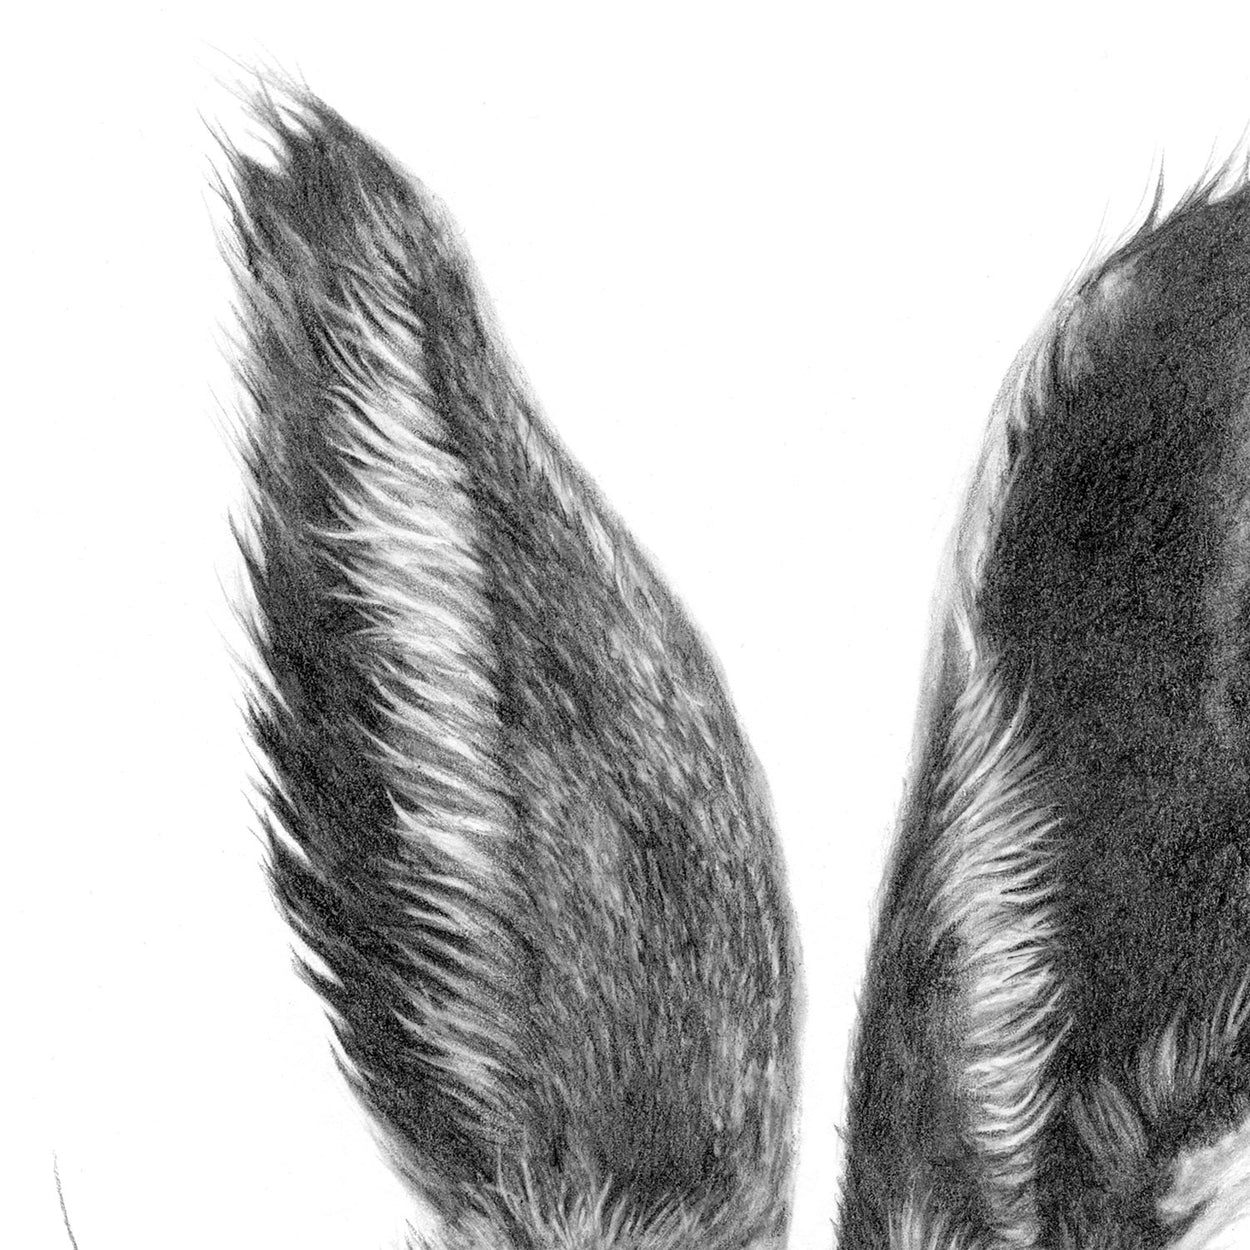 Hare Drawing Ears Close-up 3 - The Thriving Wild - Jill Dimond